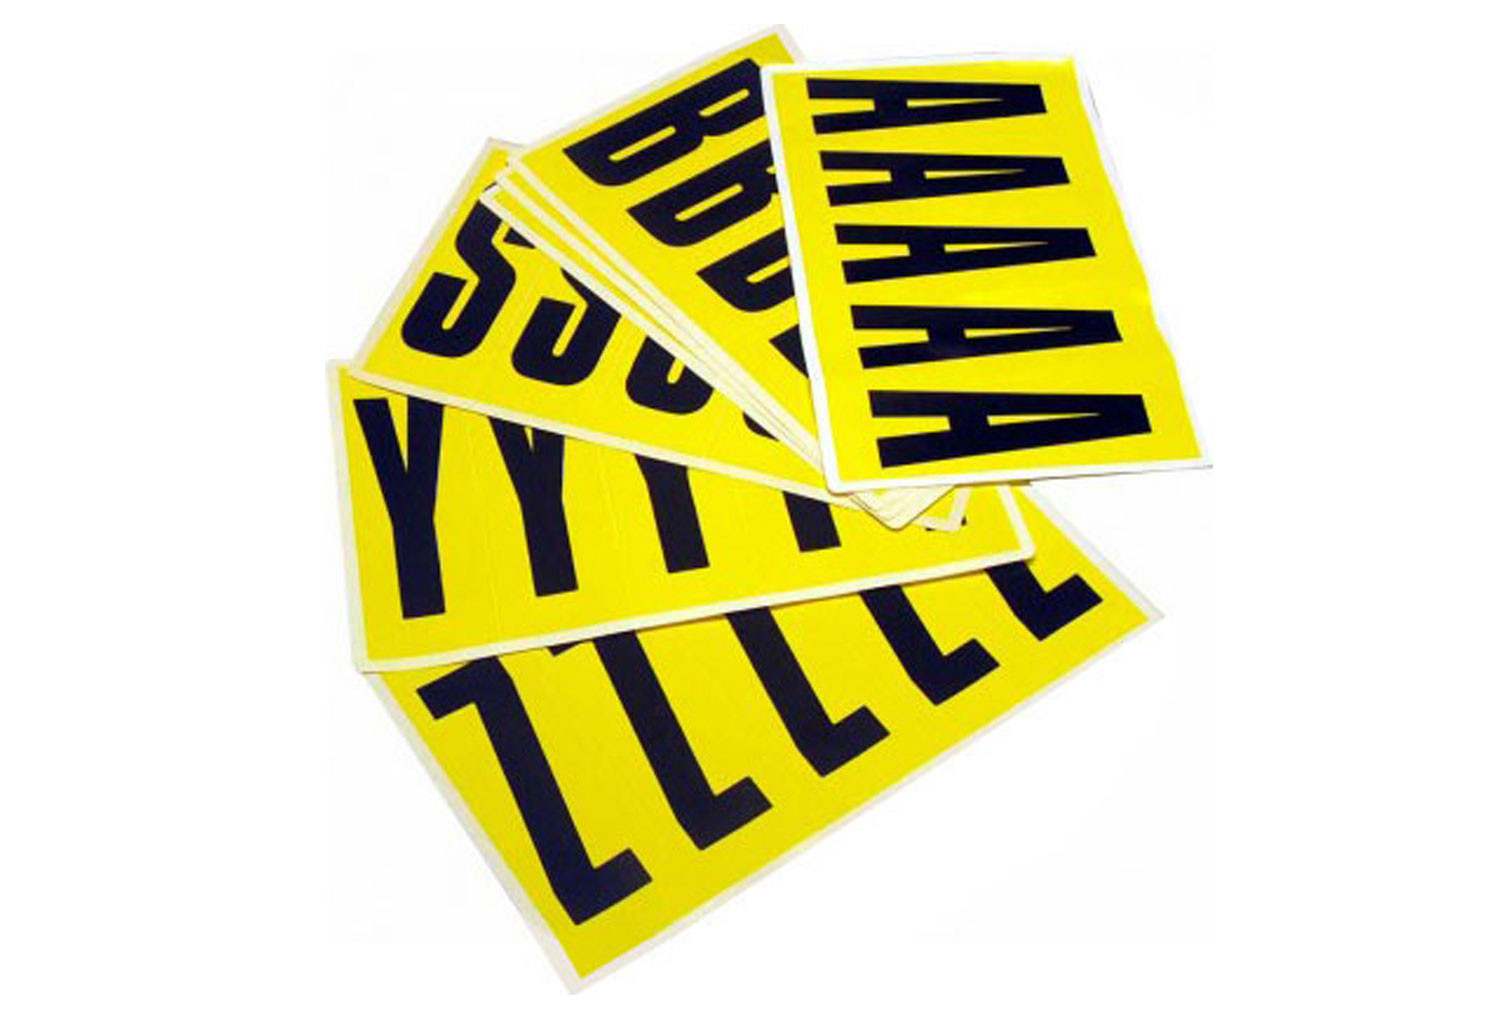 Self Adhesive Letters 130mm High (Pack Of 5)